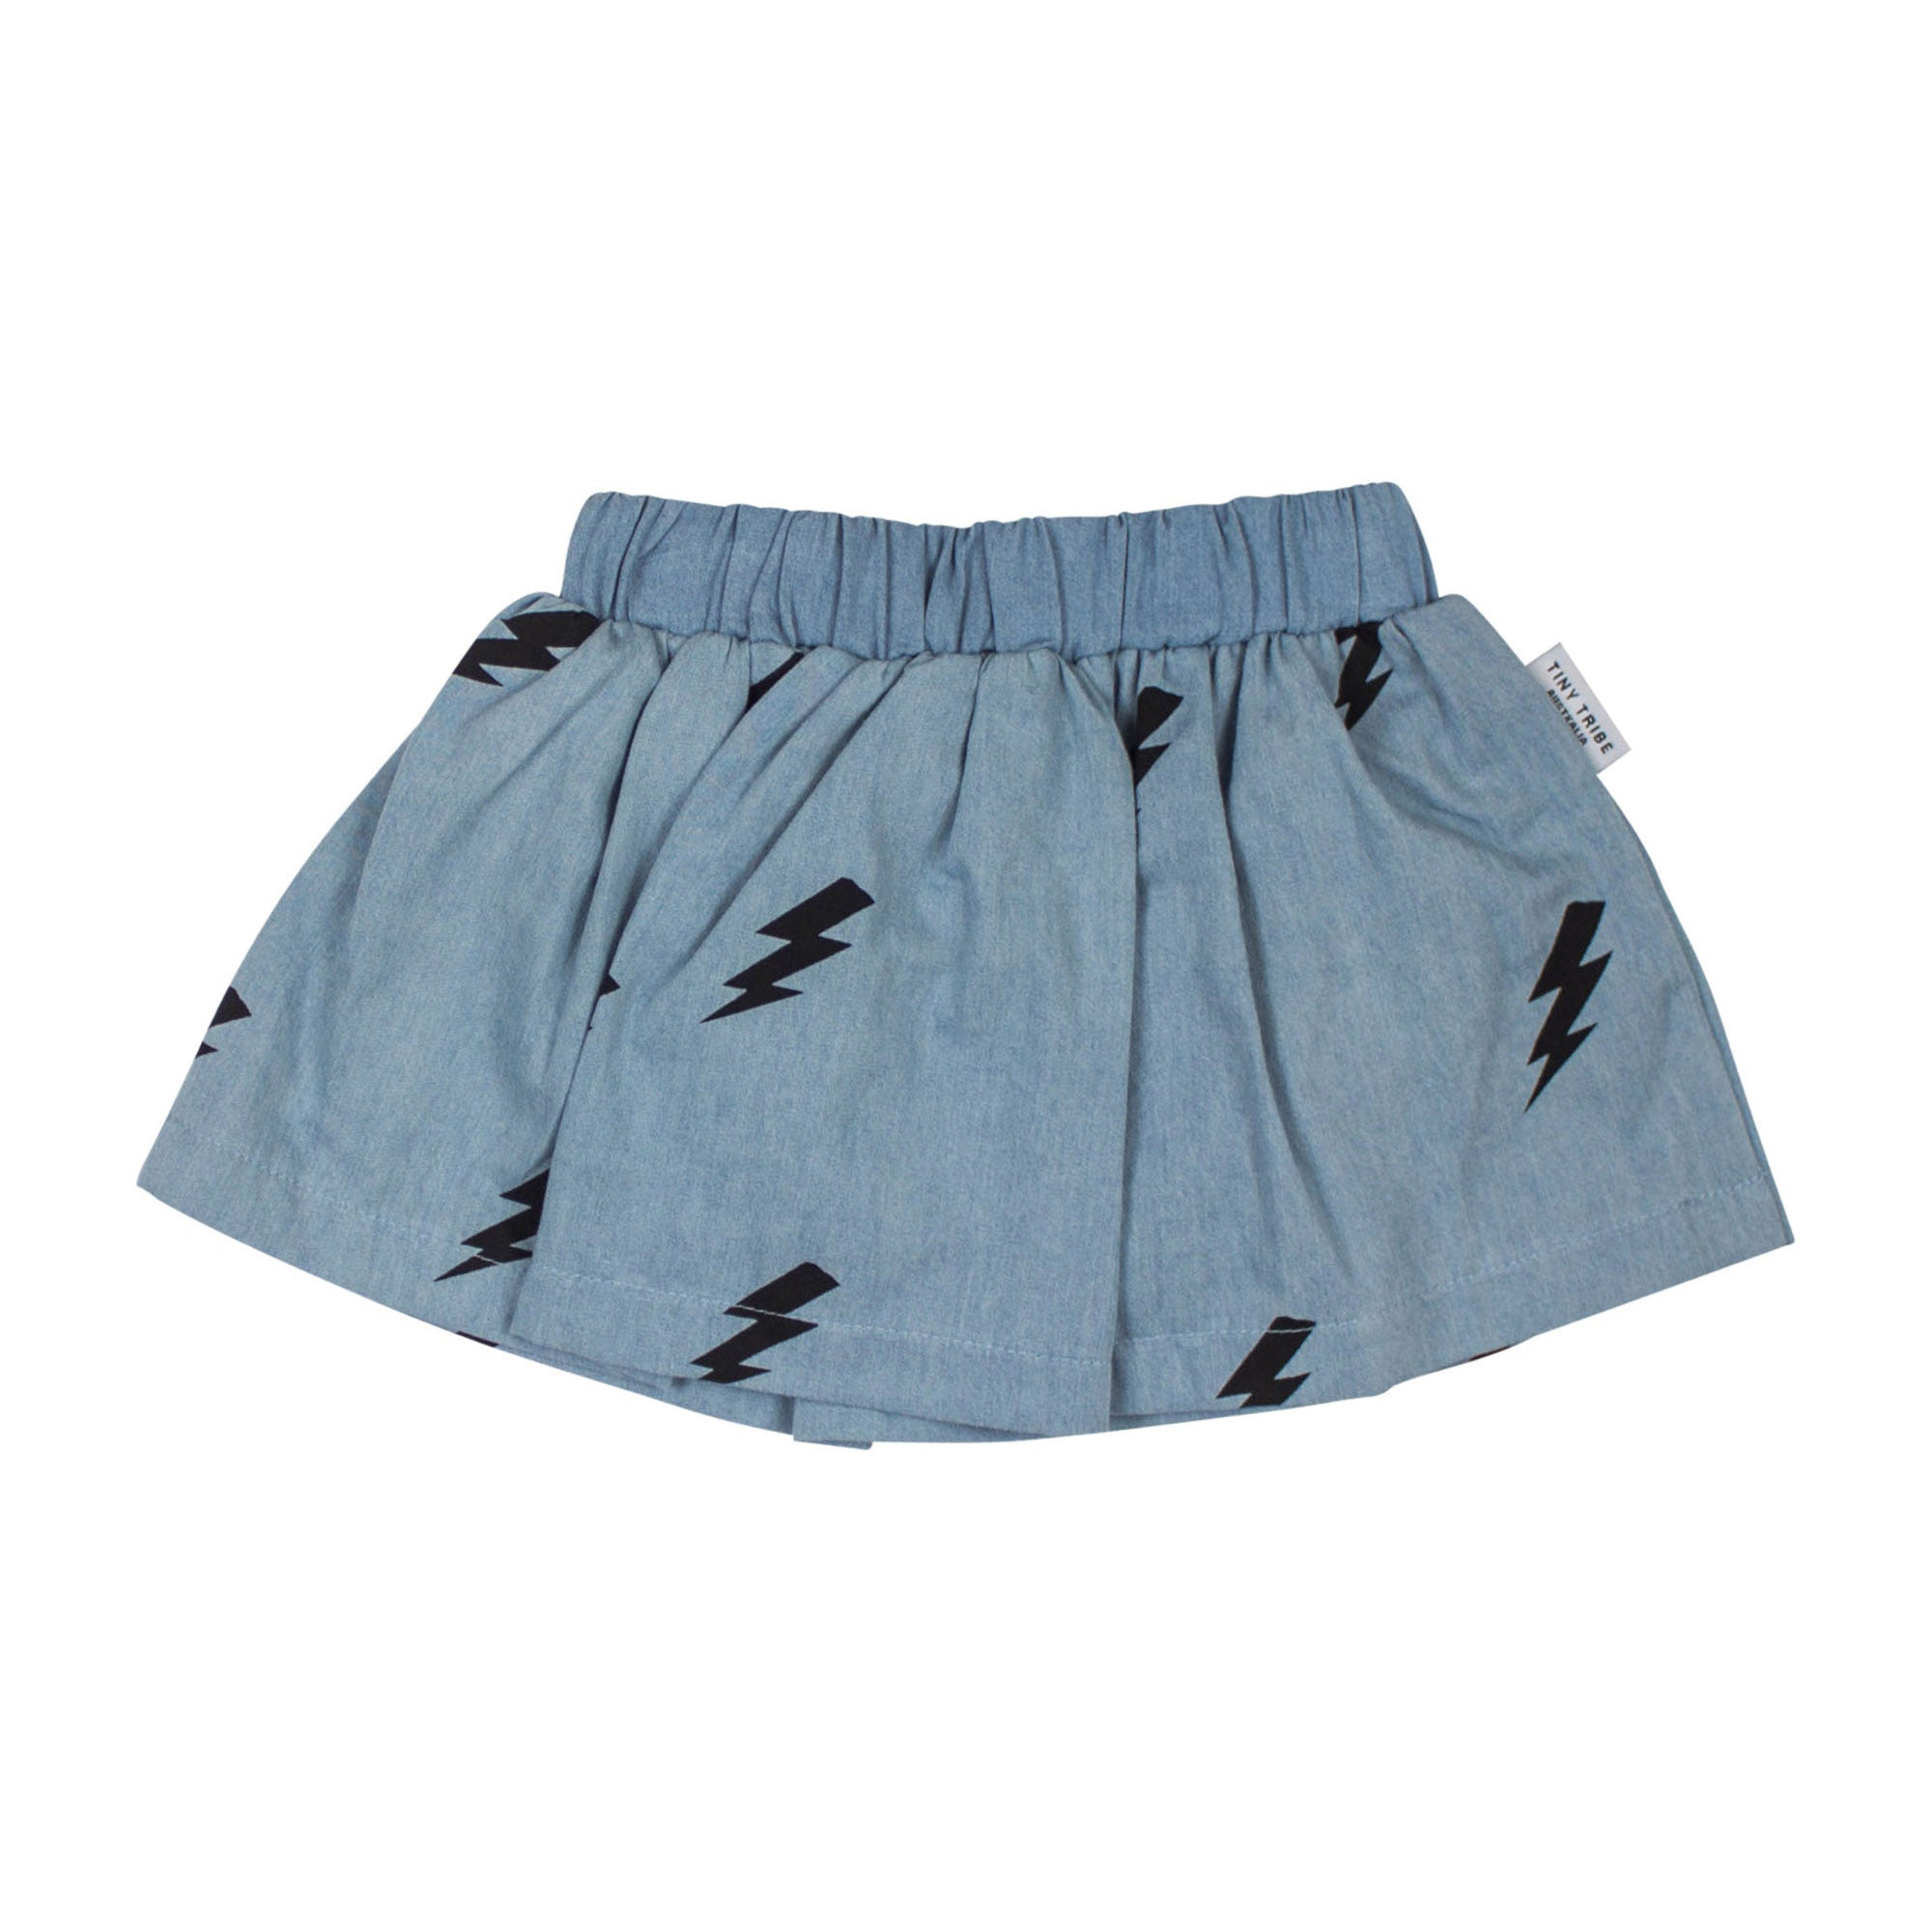 Thunder Girls Skirt